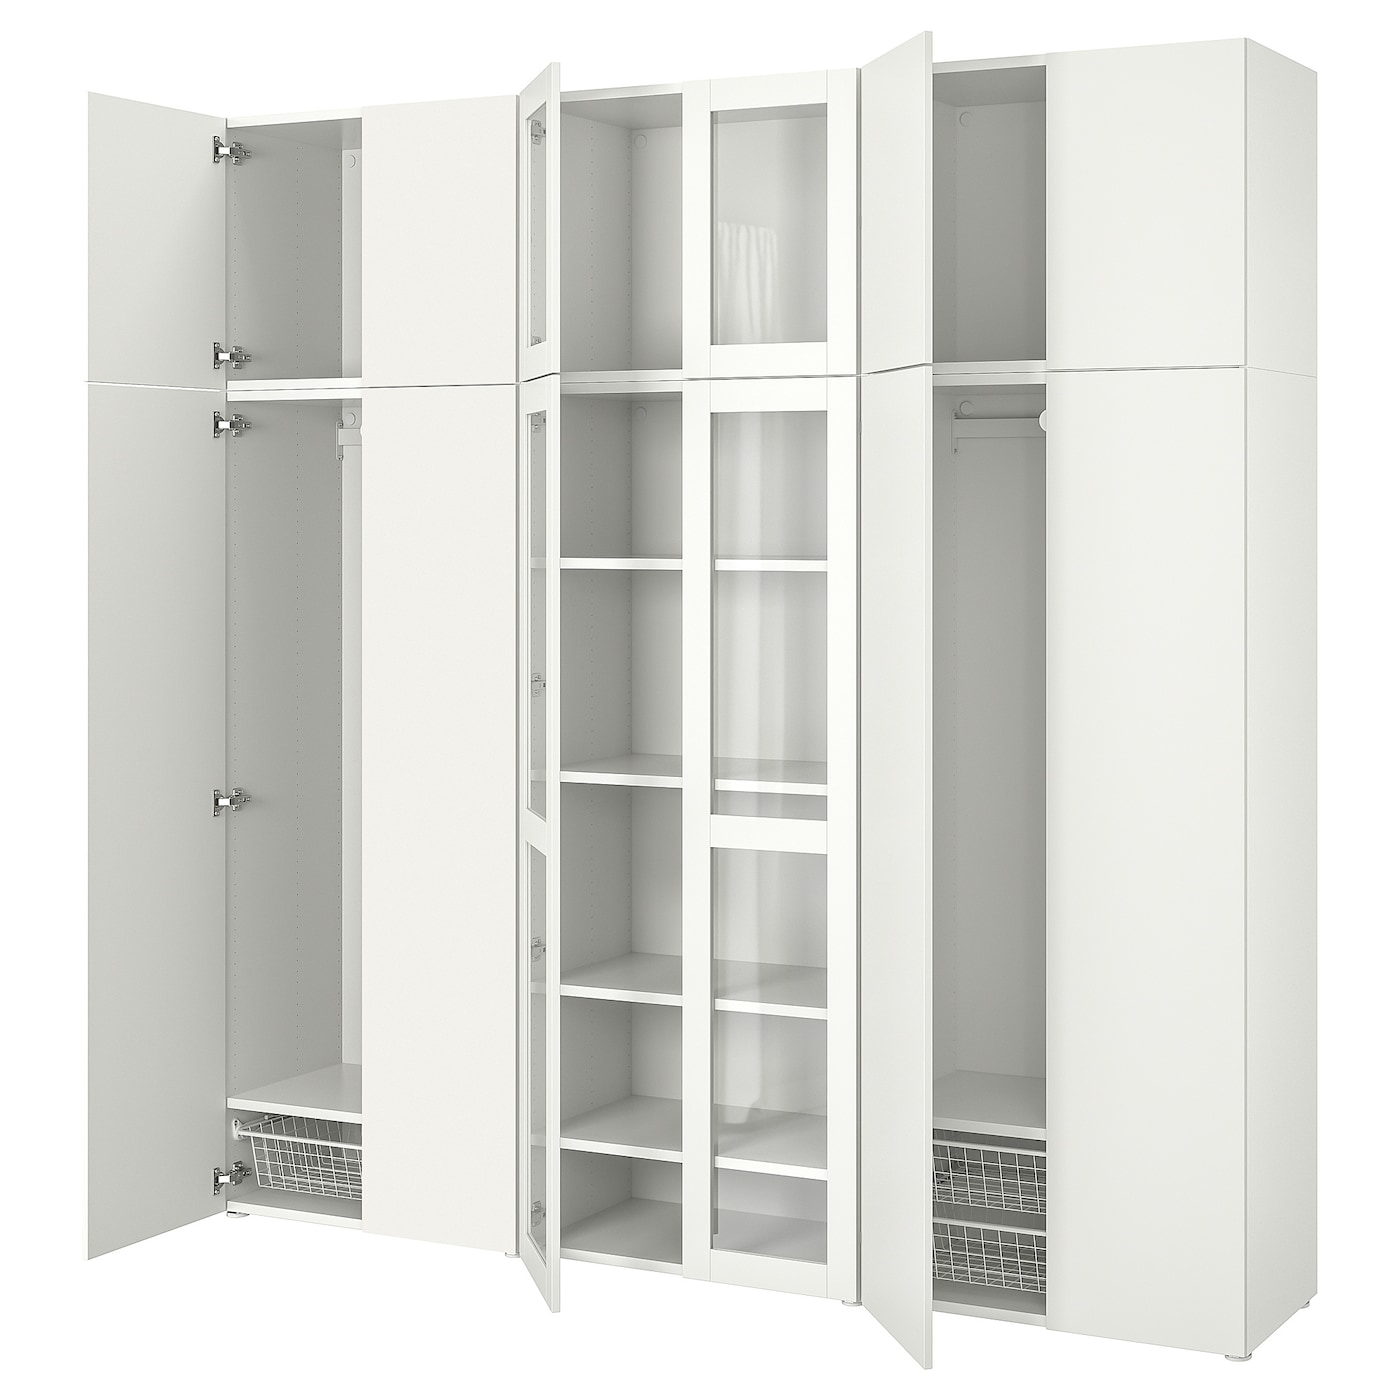 IKEA PLATSA storage combination Perfect where space is limited since the frame is narrow.